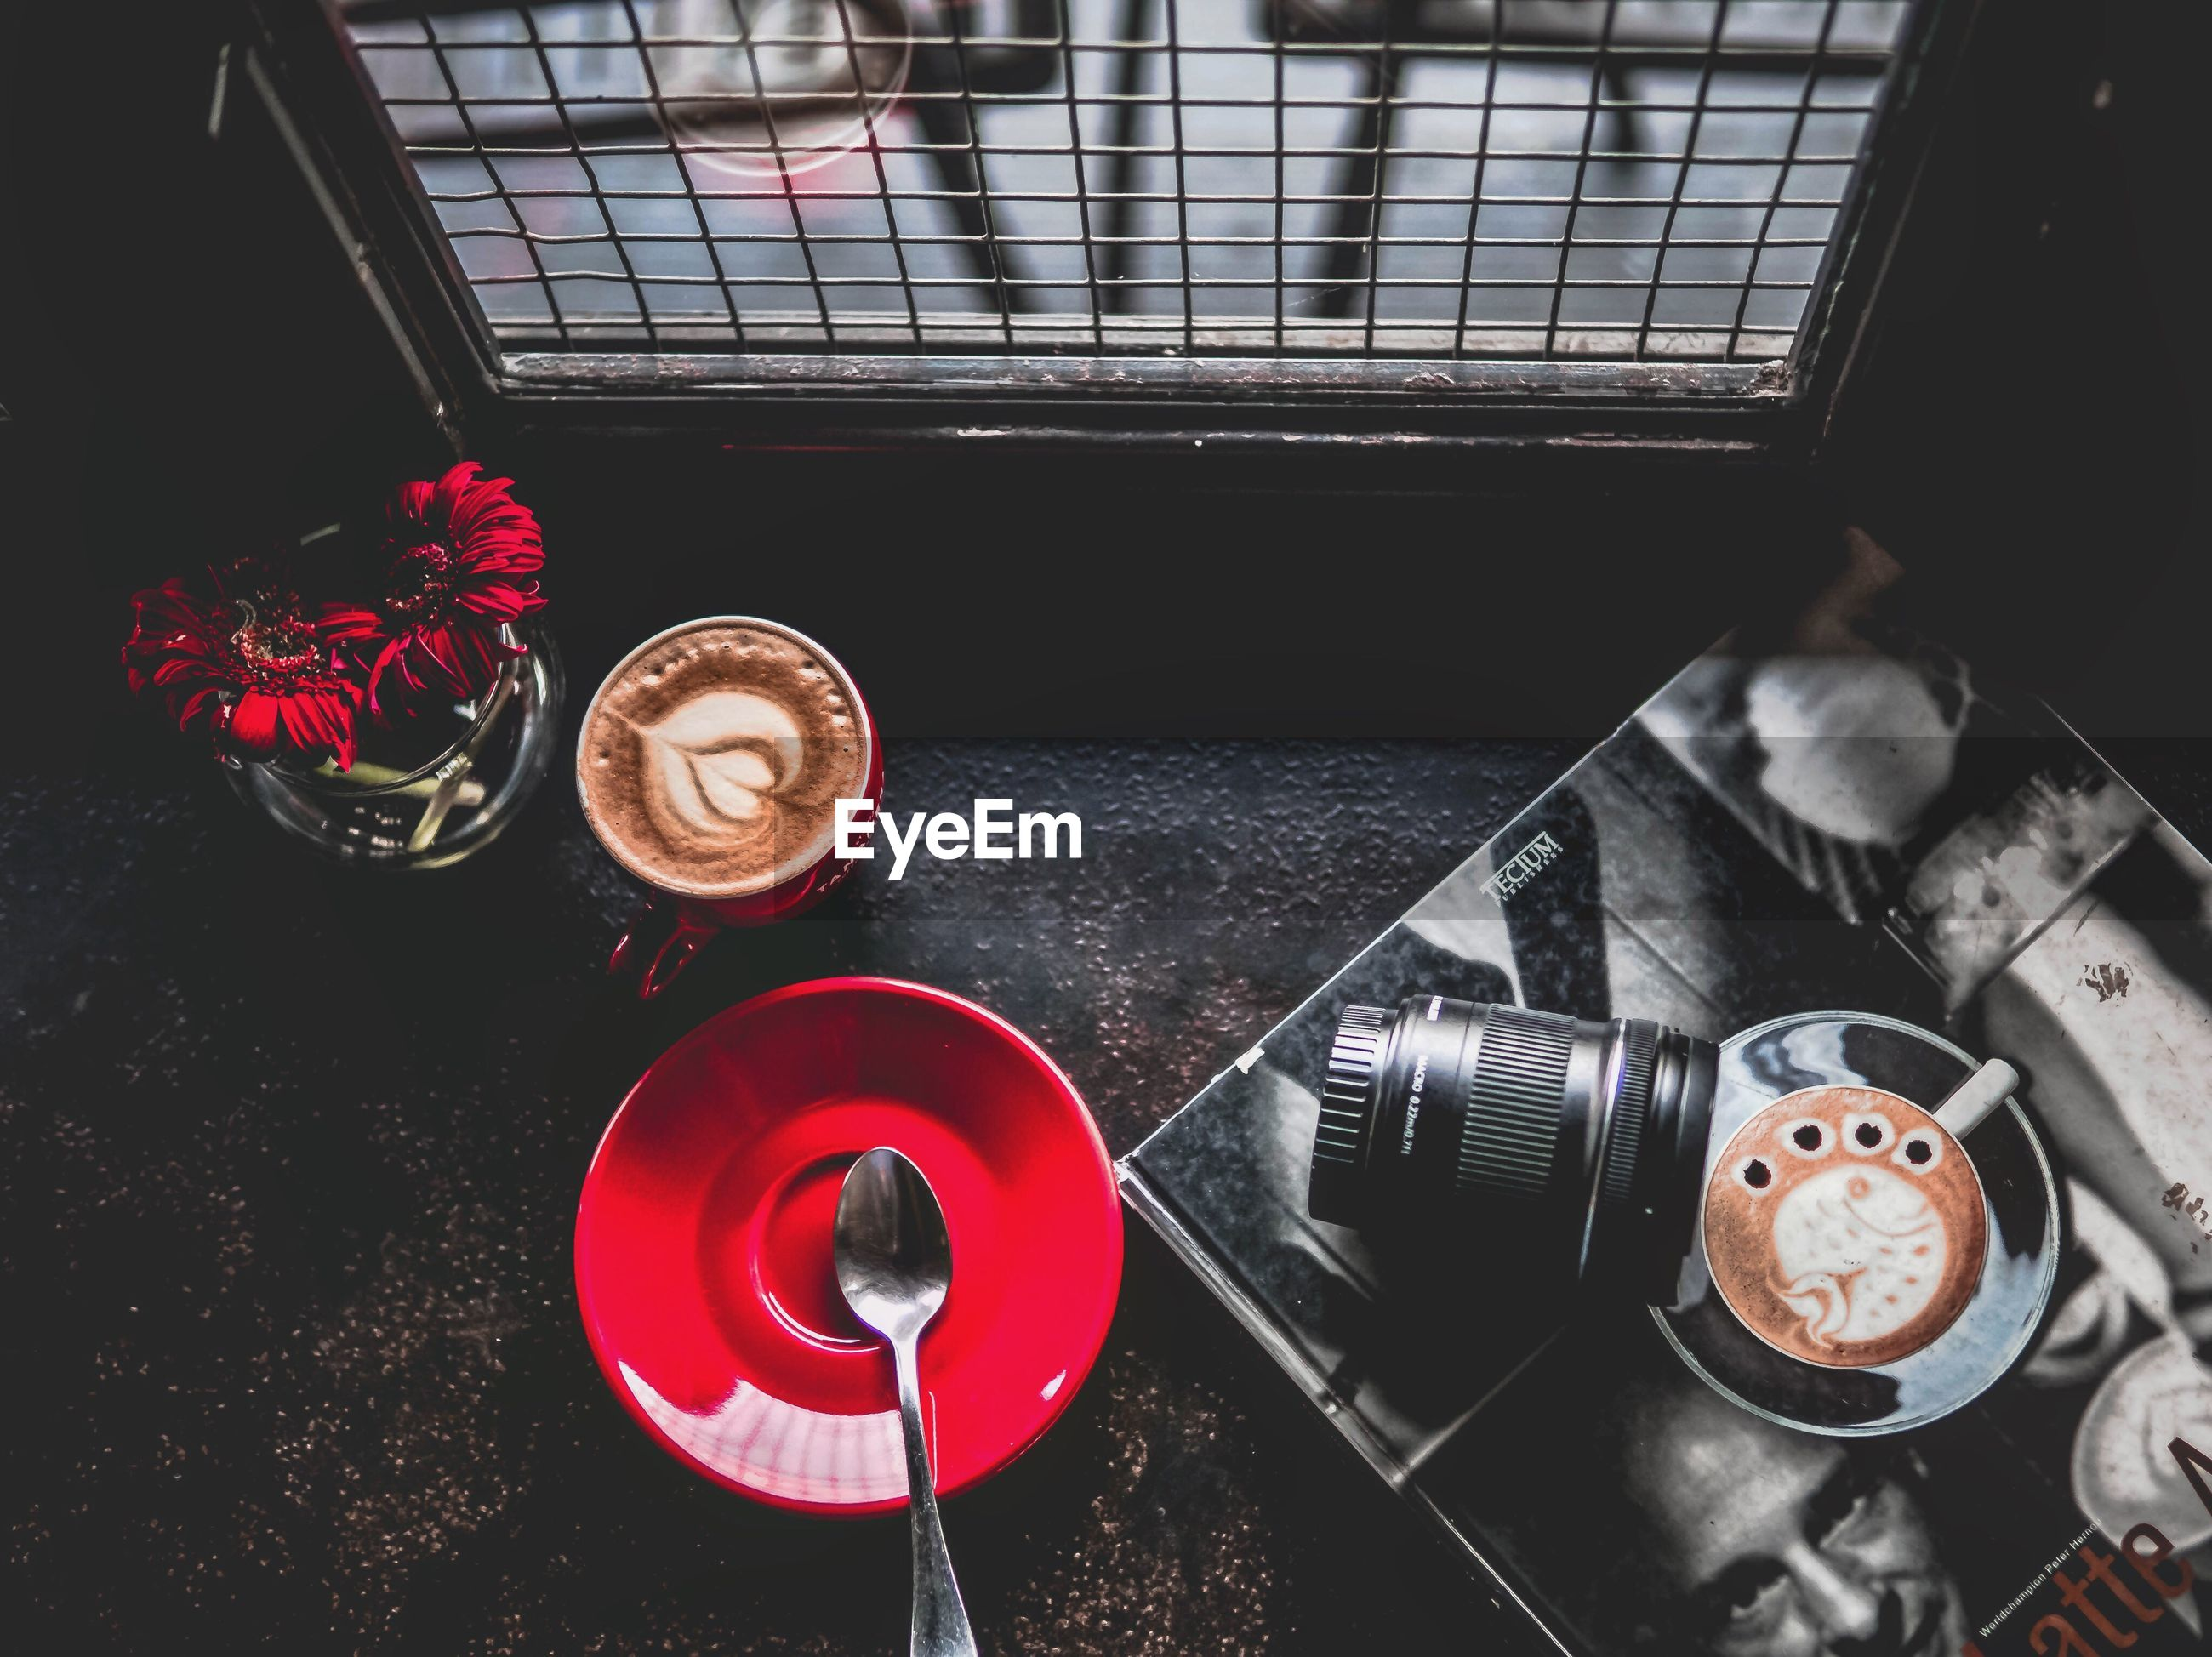 High angle view of coffee with flowers and camera lens on table